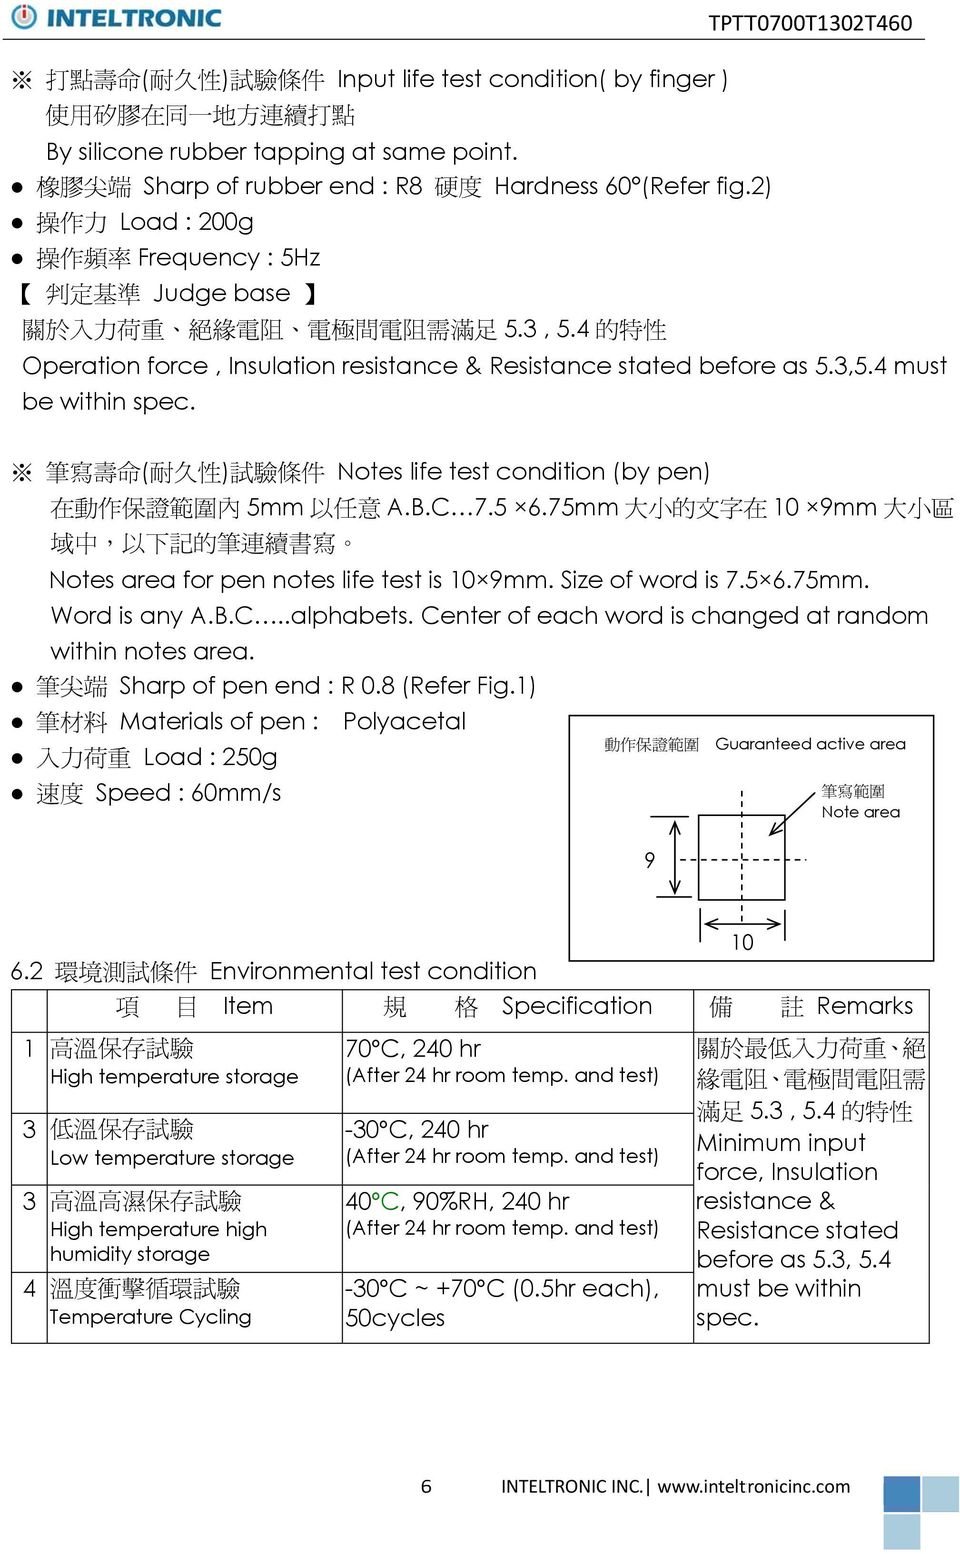 75mm 10 9mm 連 Notes area for pen notes life test is 10 9mm. Size of word is 7.5 6.75mm. Word is any A.B.C..alphabets. Center of each word is changed at random within notes area.